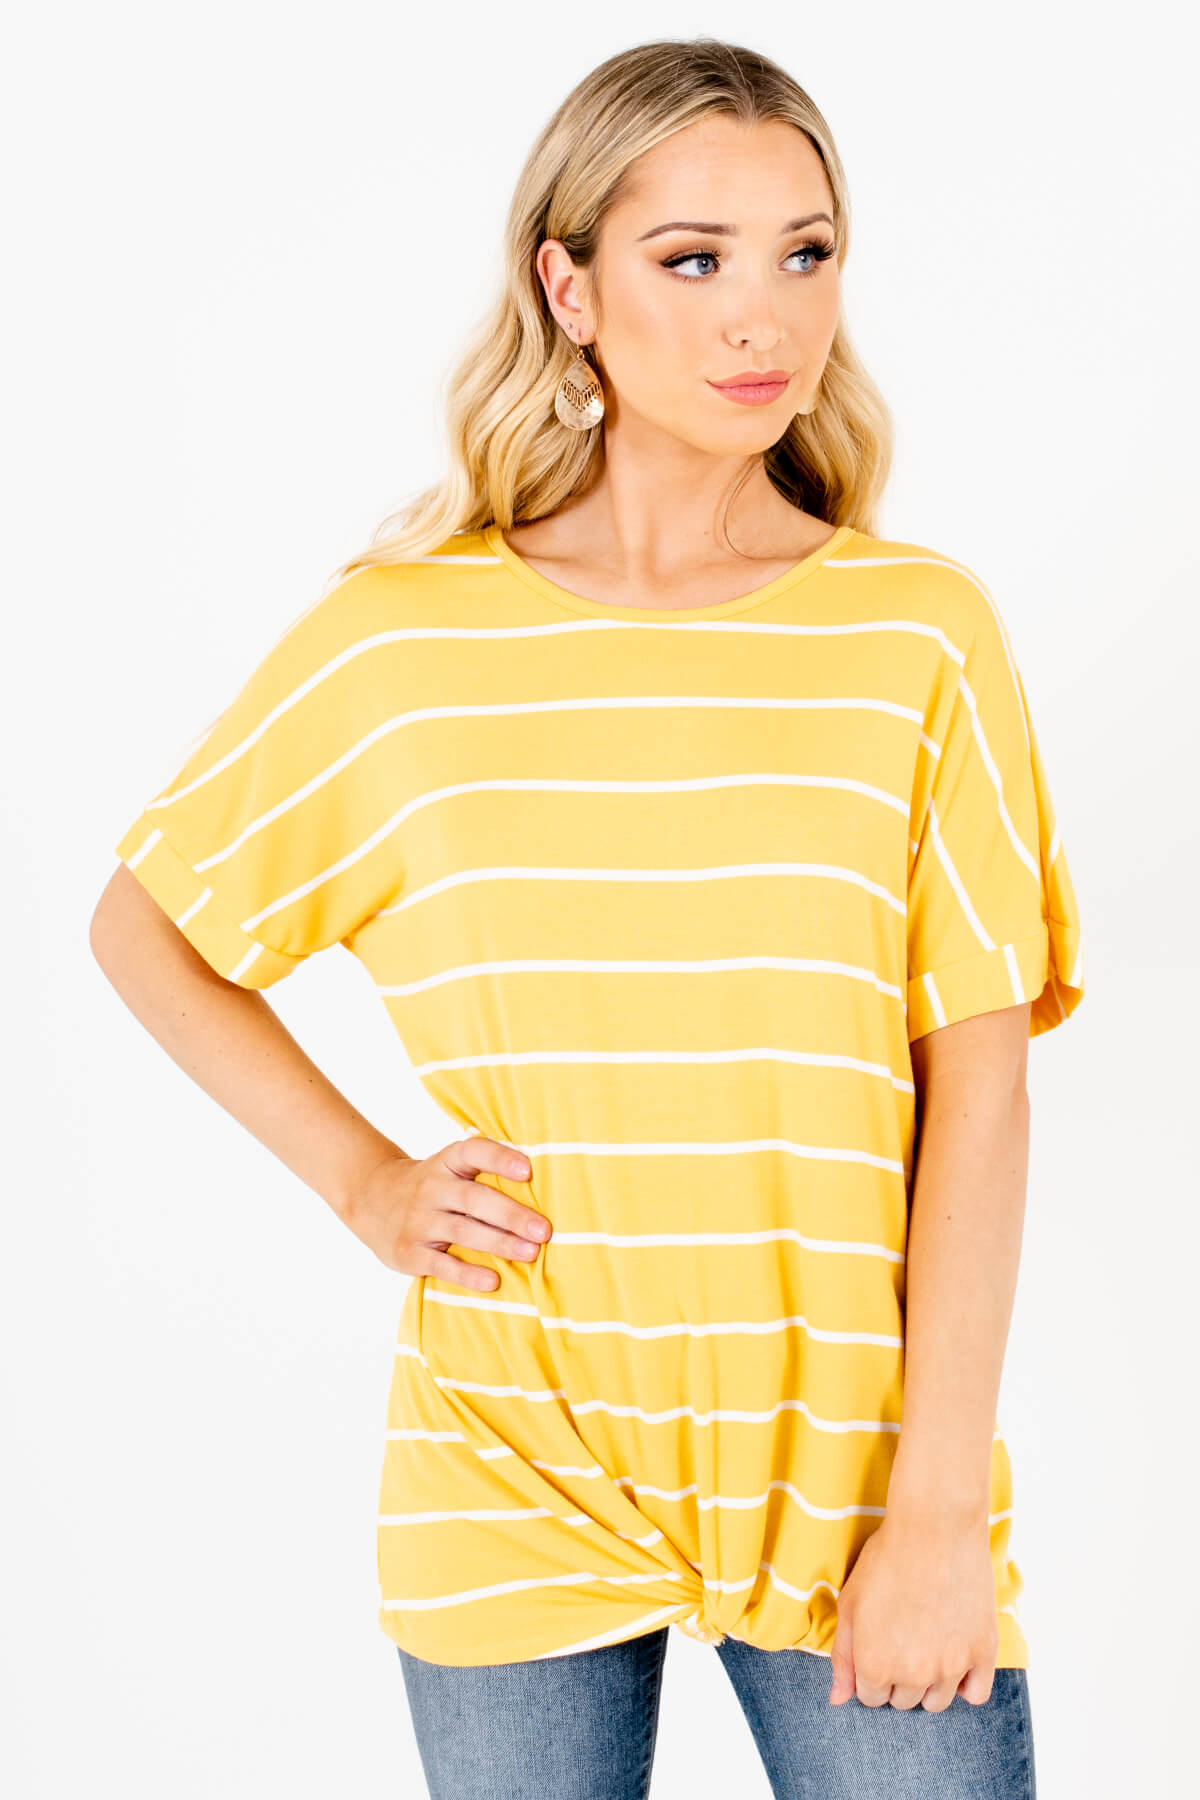 Yellow and White Striped Boutique Tops for Women